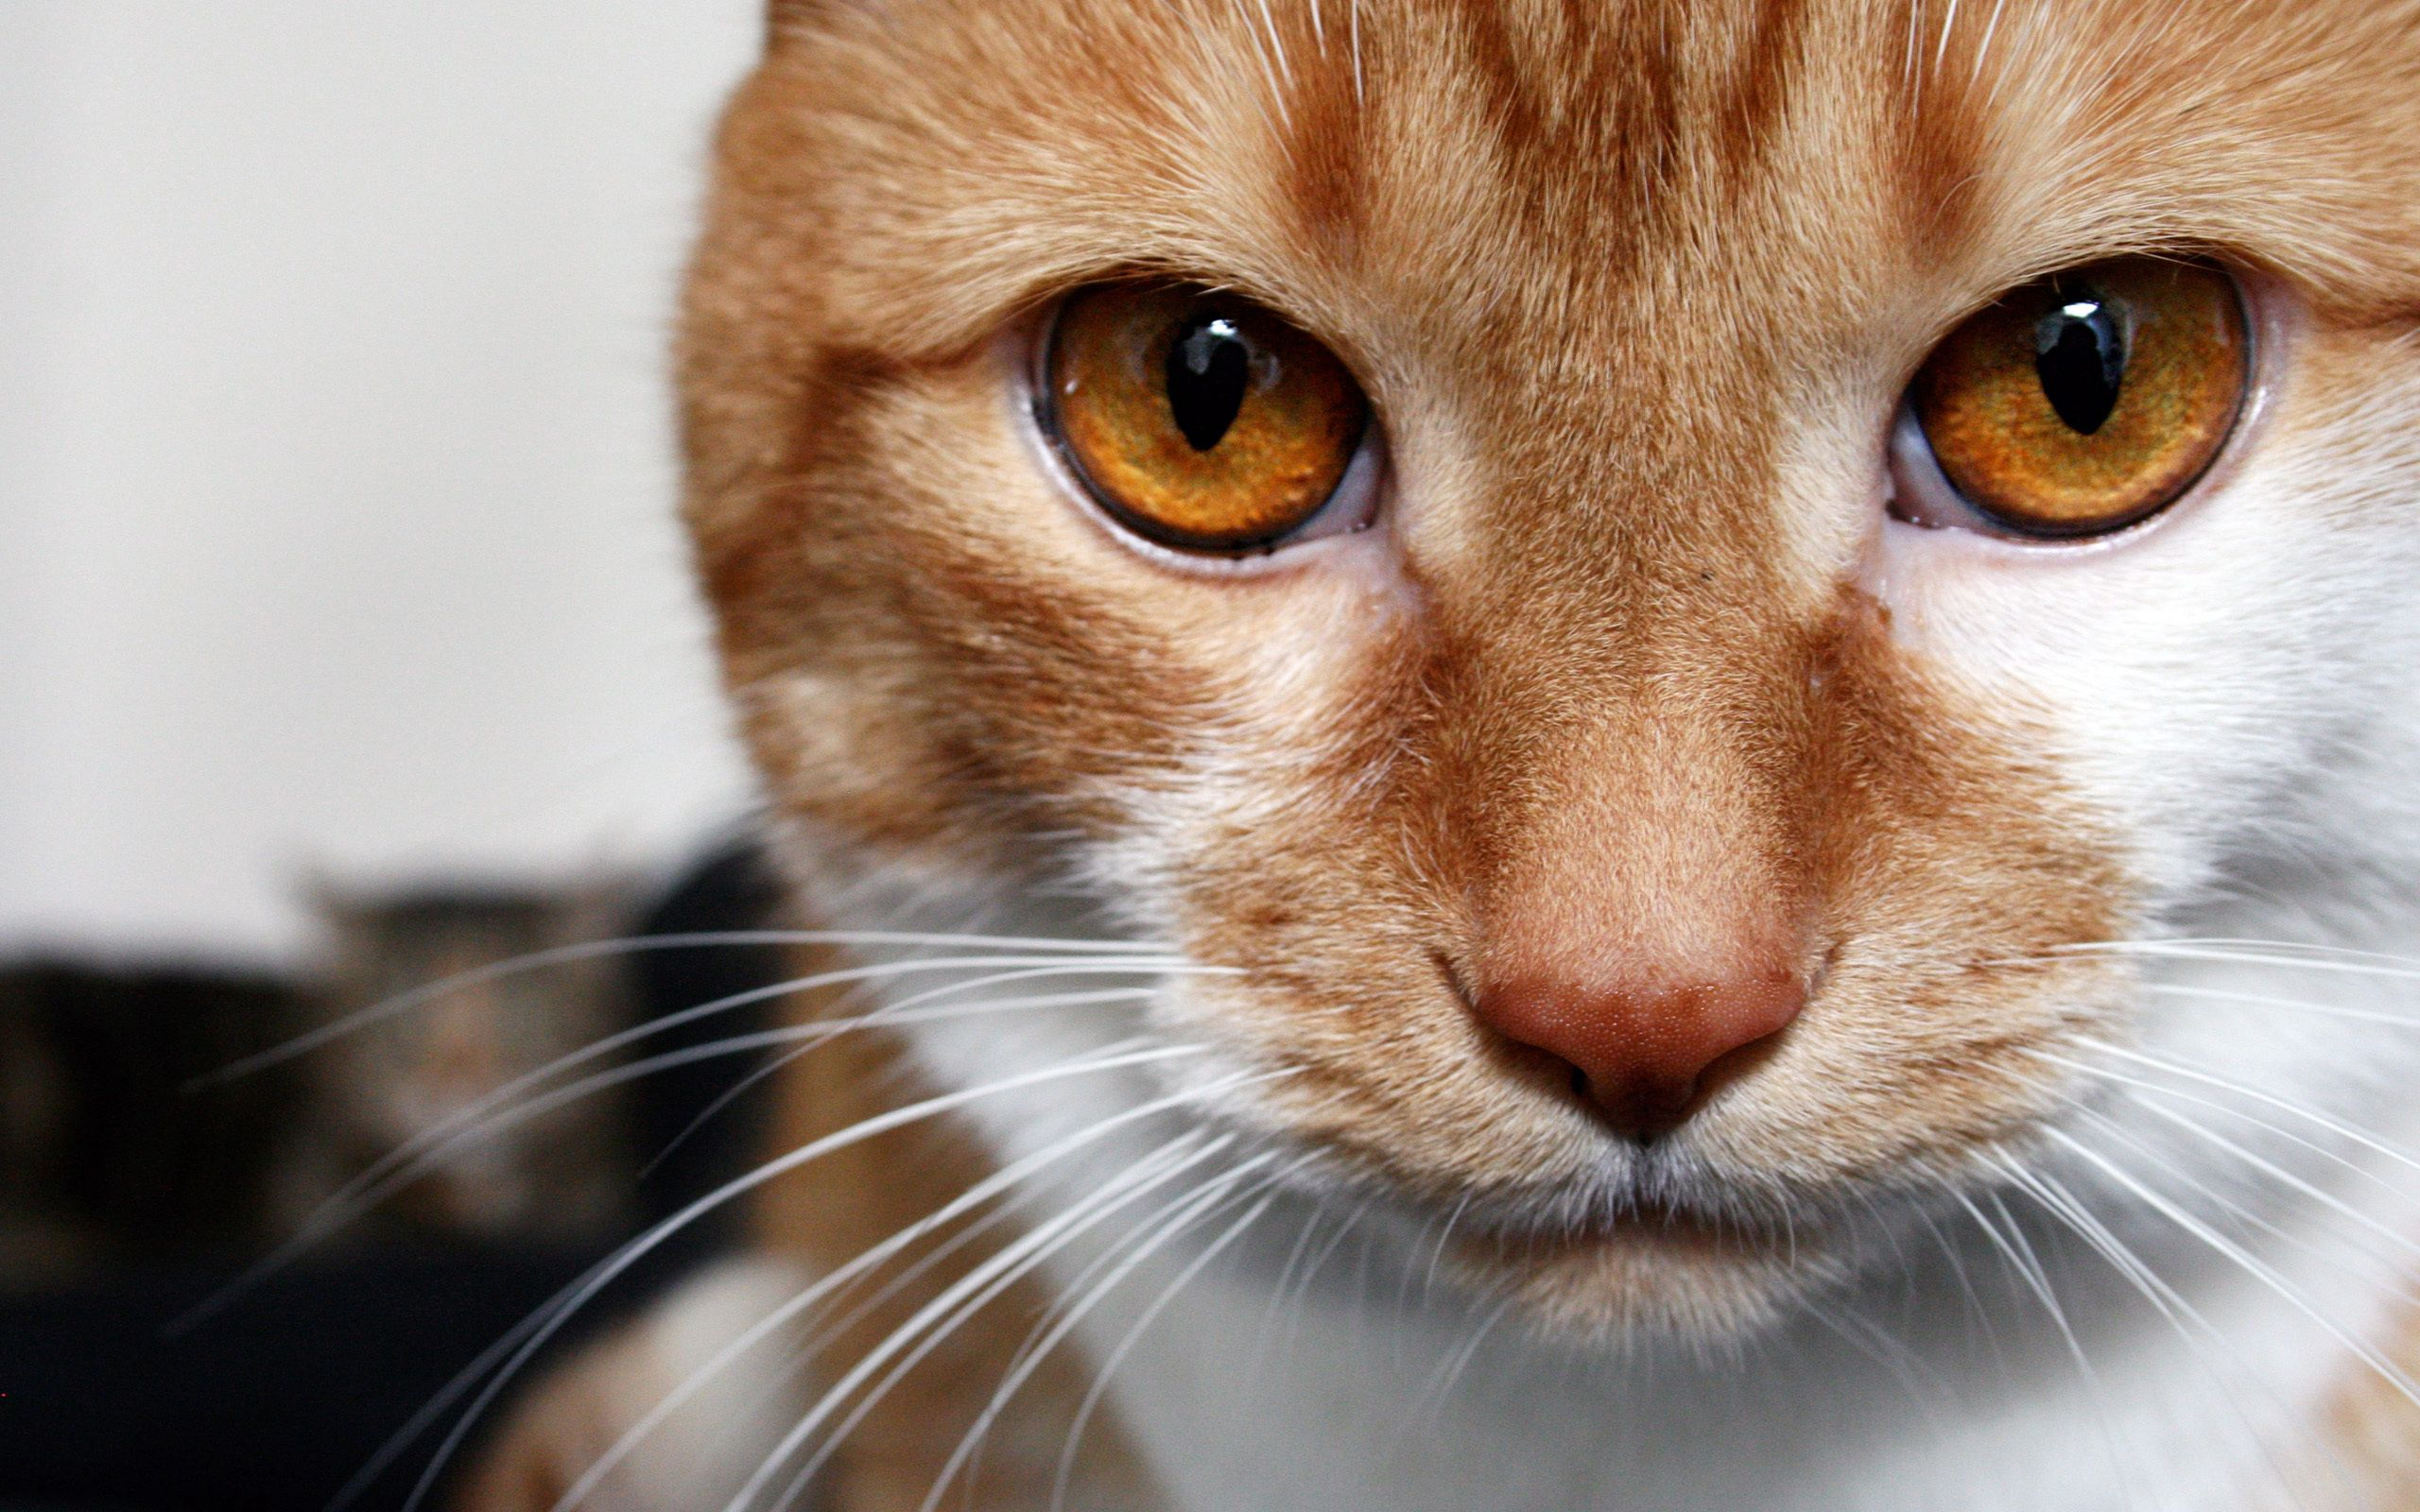 154071 download wallpaper Animals, Cat, Redhead, Looks, Brown Eyes, Striped screensavers and pictures for free